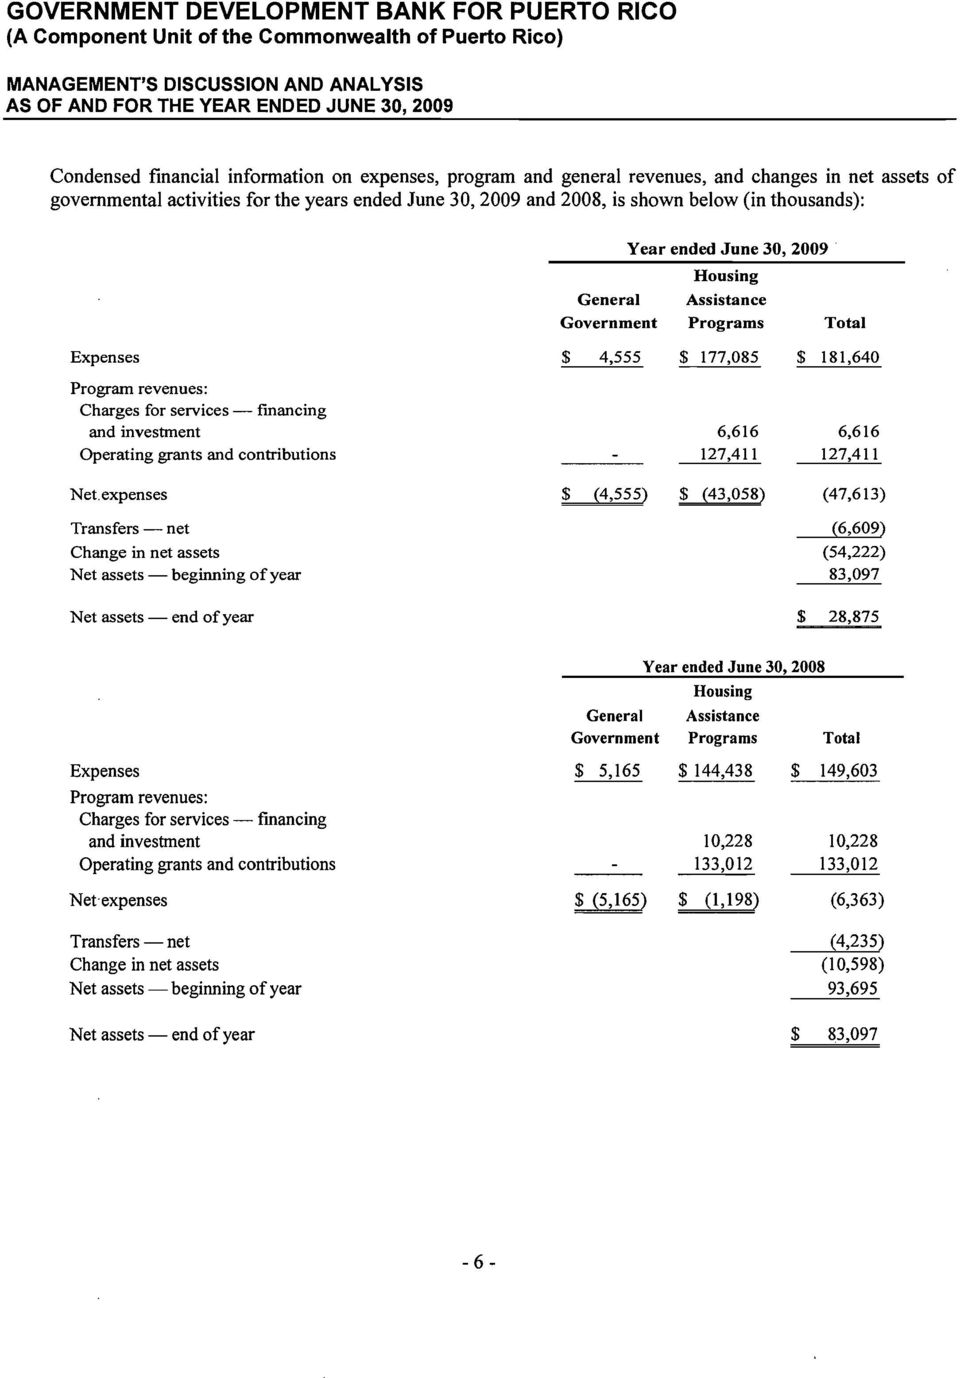 Government Year ended June 30, 2009 Housing Assistance Programs Total Expenses $ 4,555 $ 177,085 $ 181,640 Program revenues: Charges for services fmancing and investment Operating grants and